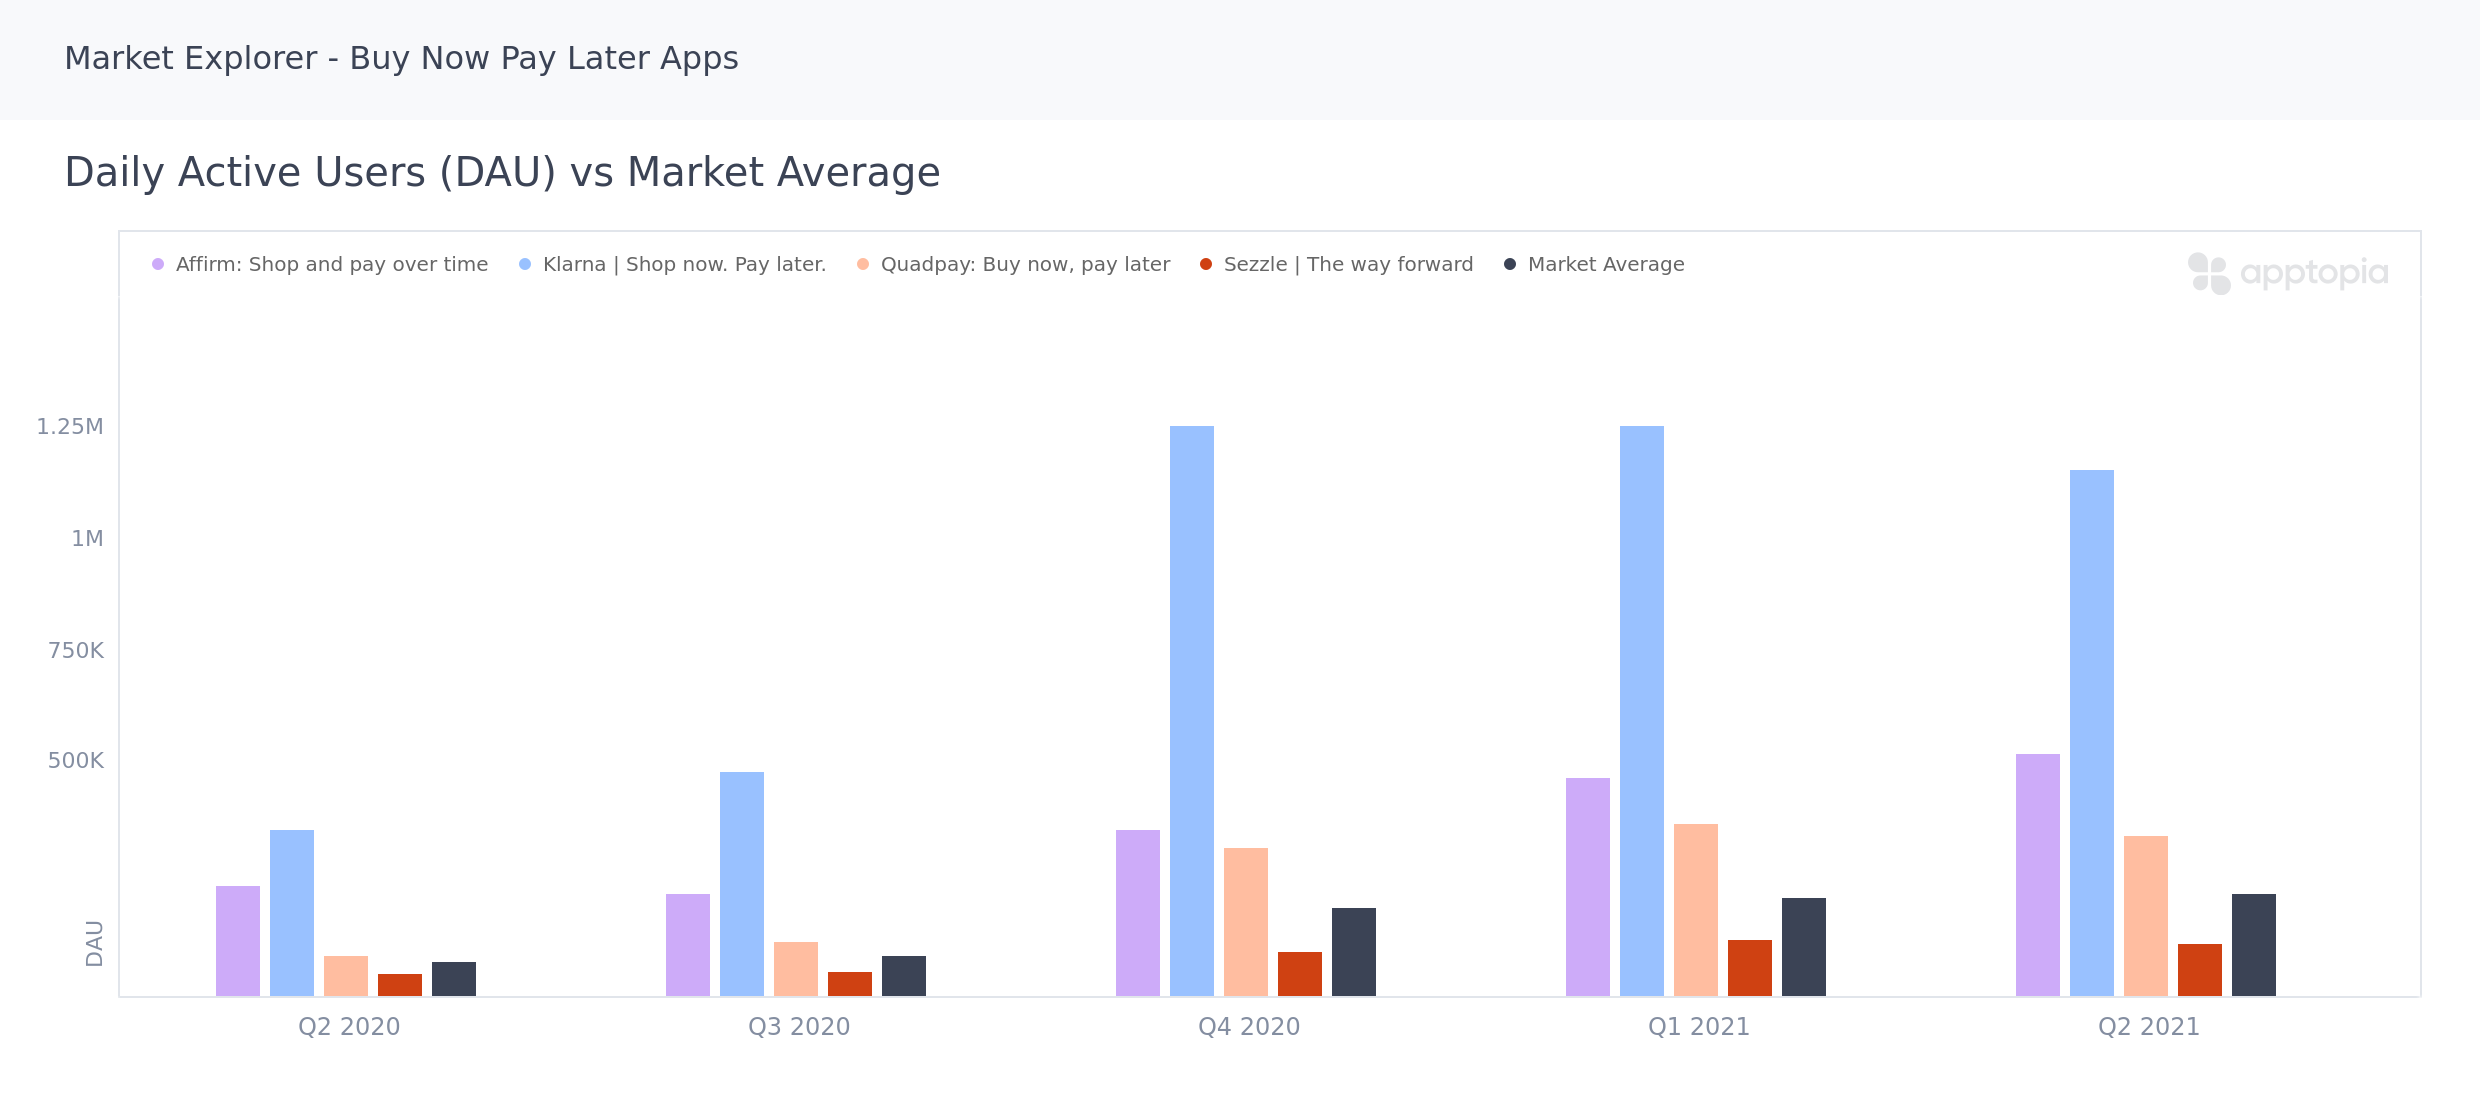 Daily active users vs Market Average of Buy Now Pay Later Apps in Apptopia Market Explorer